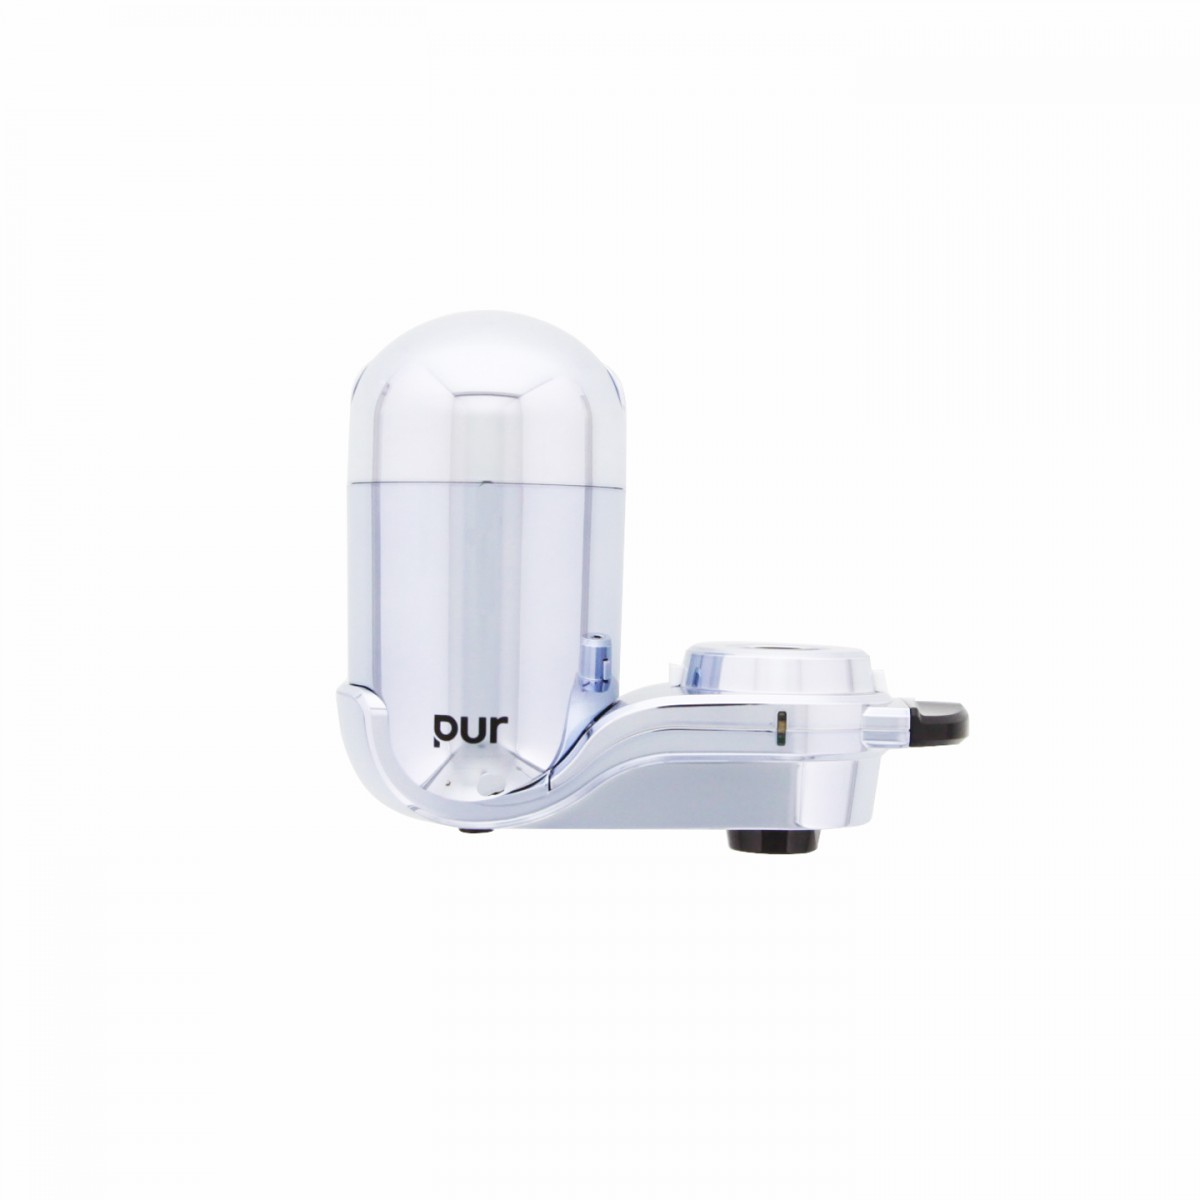 Pur Fm 3700b Vertical Faucet Water Filter System Chrome